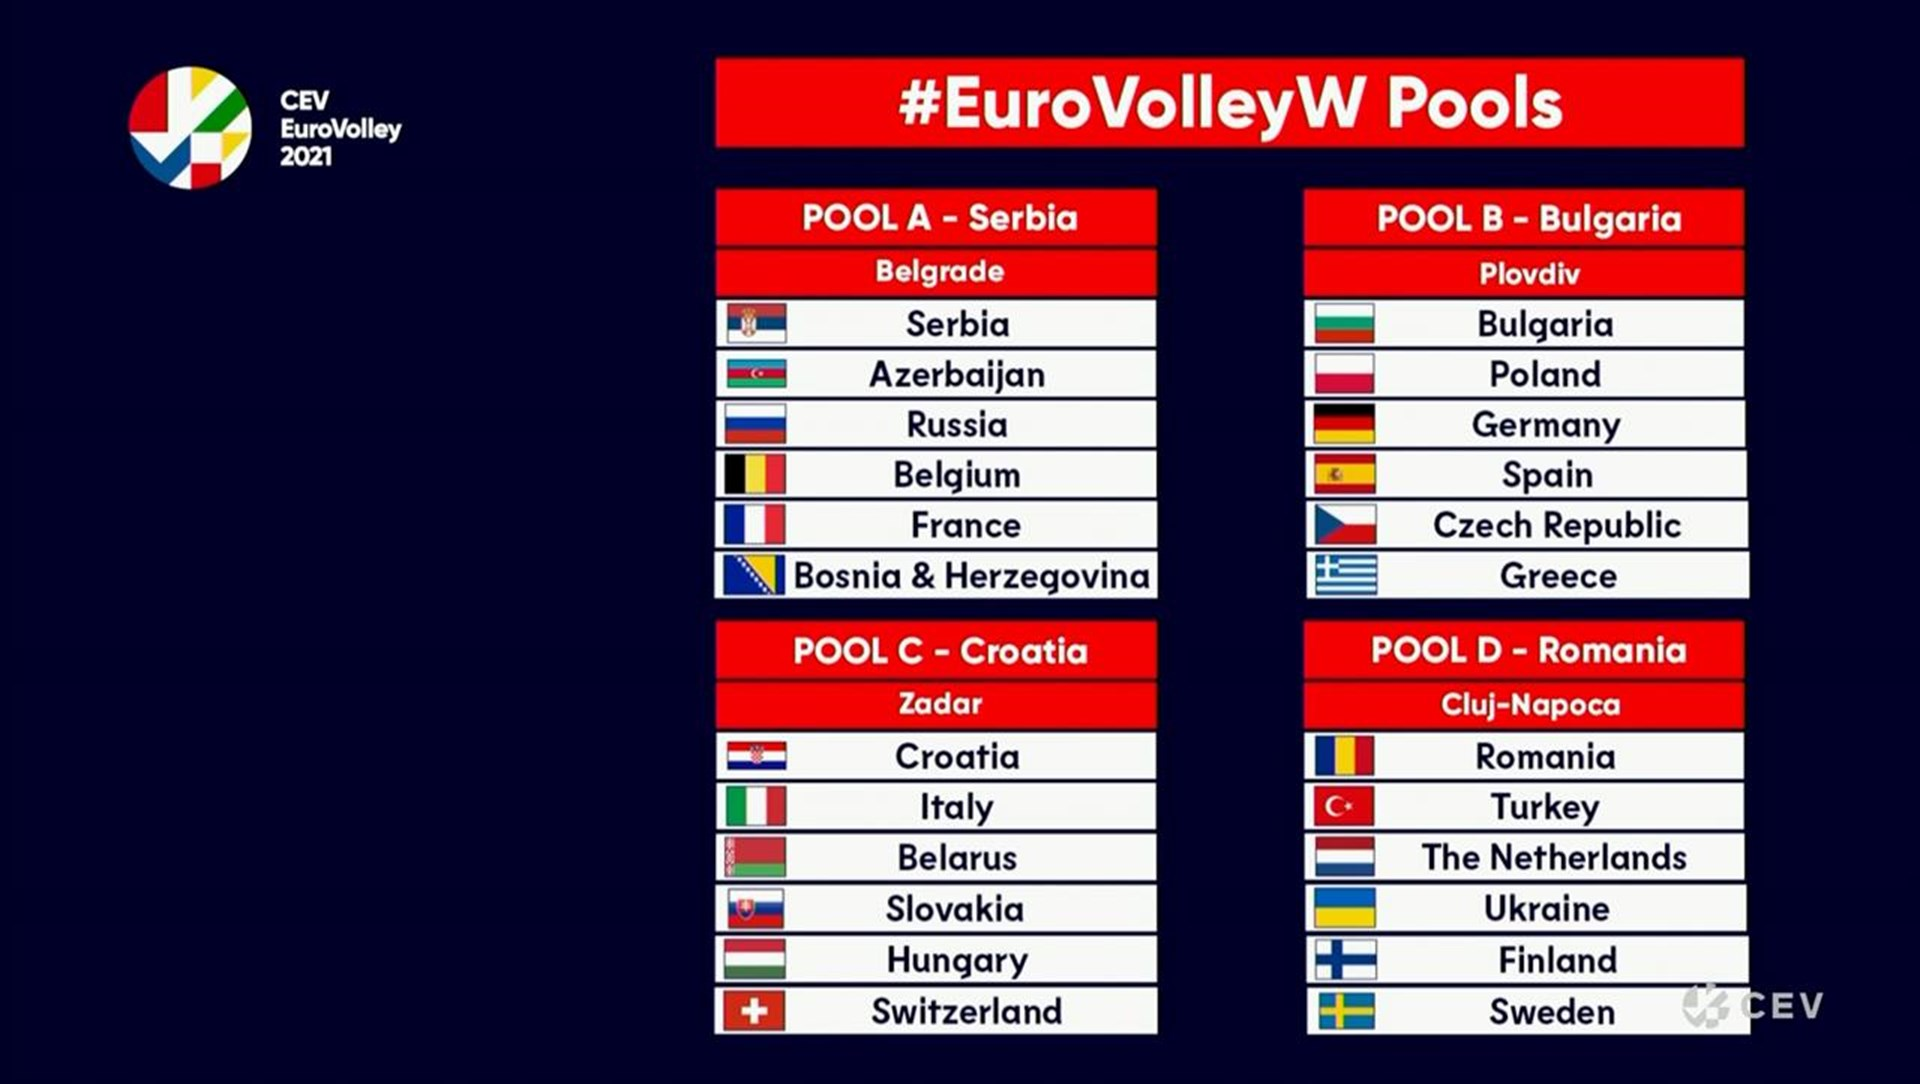 EuroVolleyW pools confirmed following DOL at iconic Belgrade City Hall |  EuroVolley